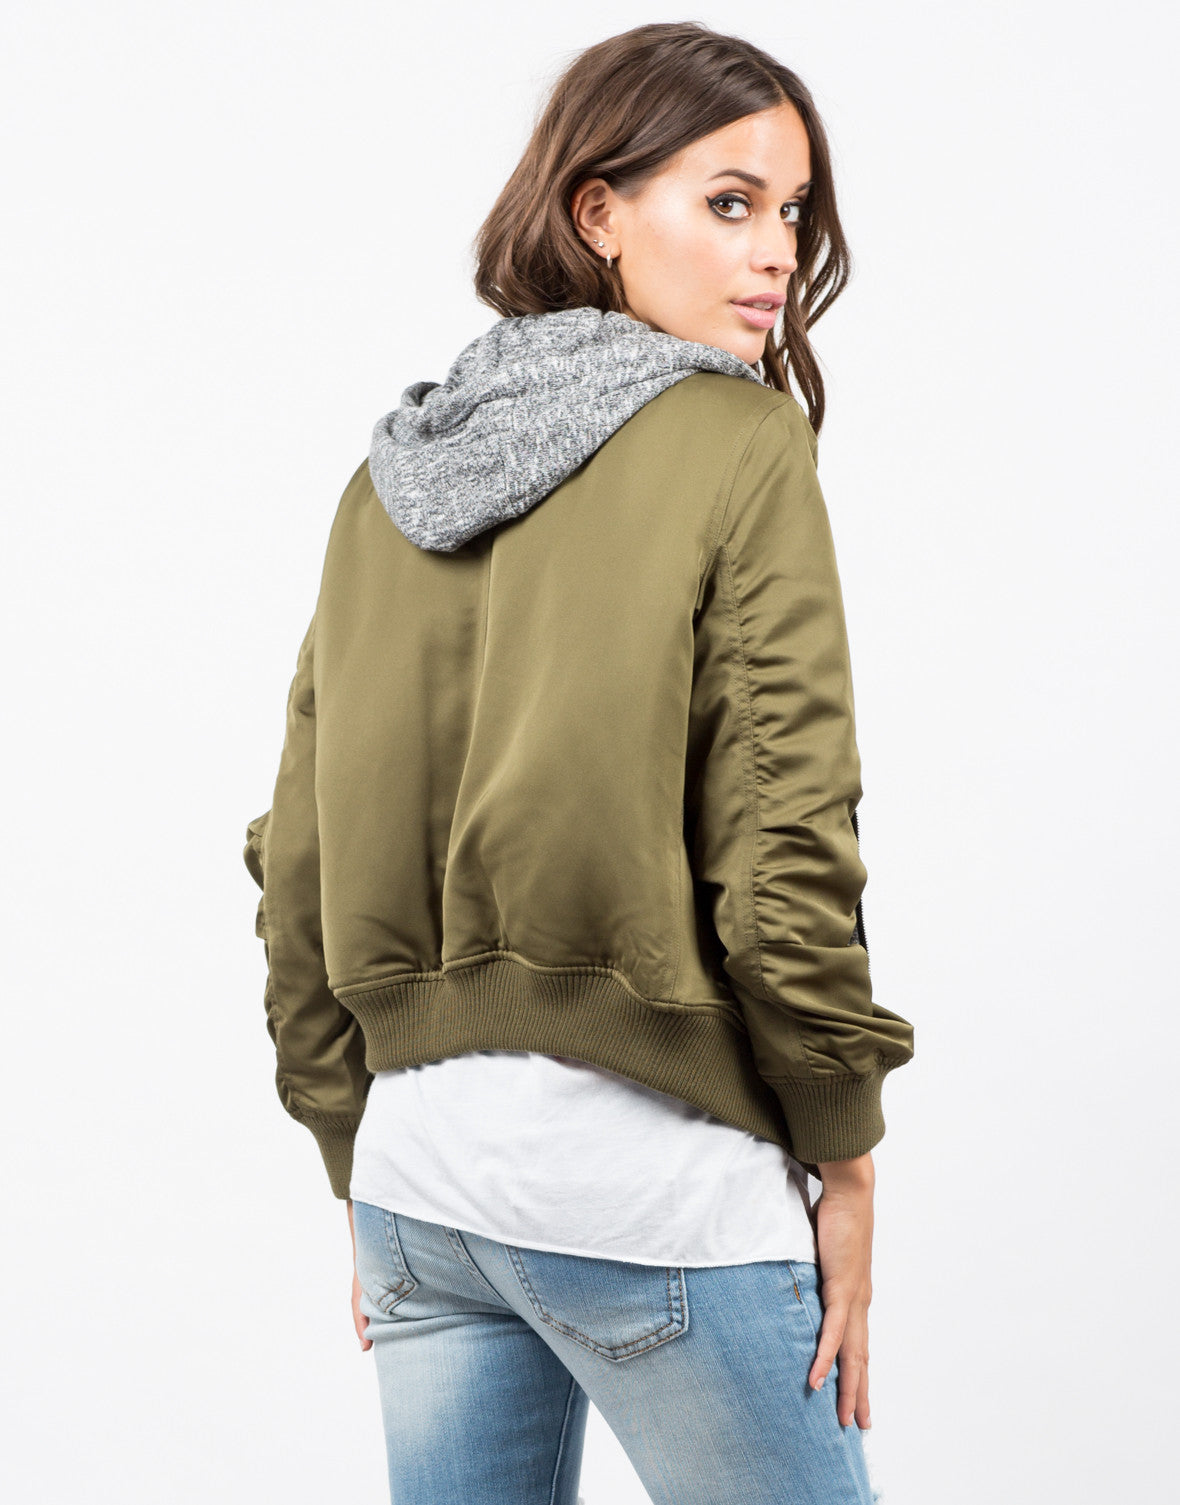 Back View of Hooded Bomber Jacket